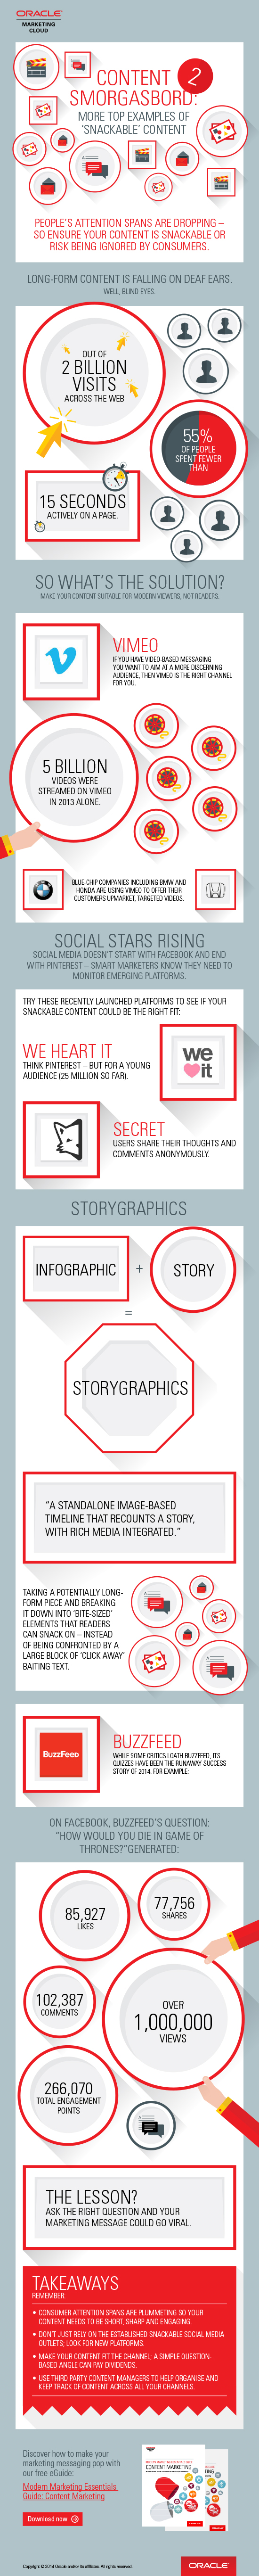 Content Smorgasbord 2: More Top Examples Of 'Snackable' Content image Infographic Content smorgasbord 2 more top examples of snackable content 1